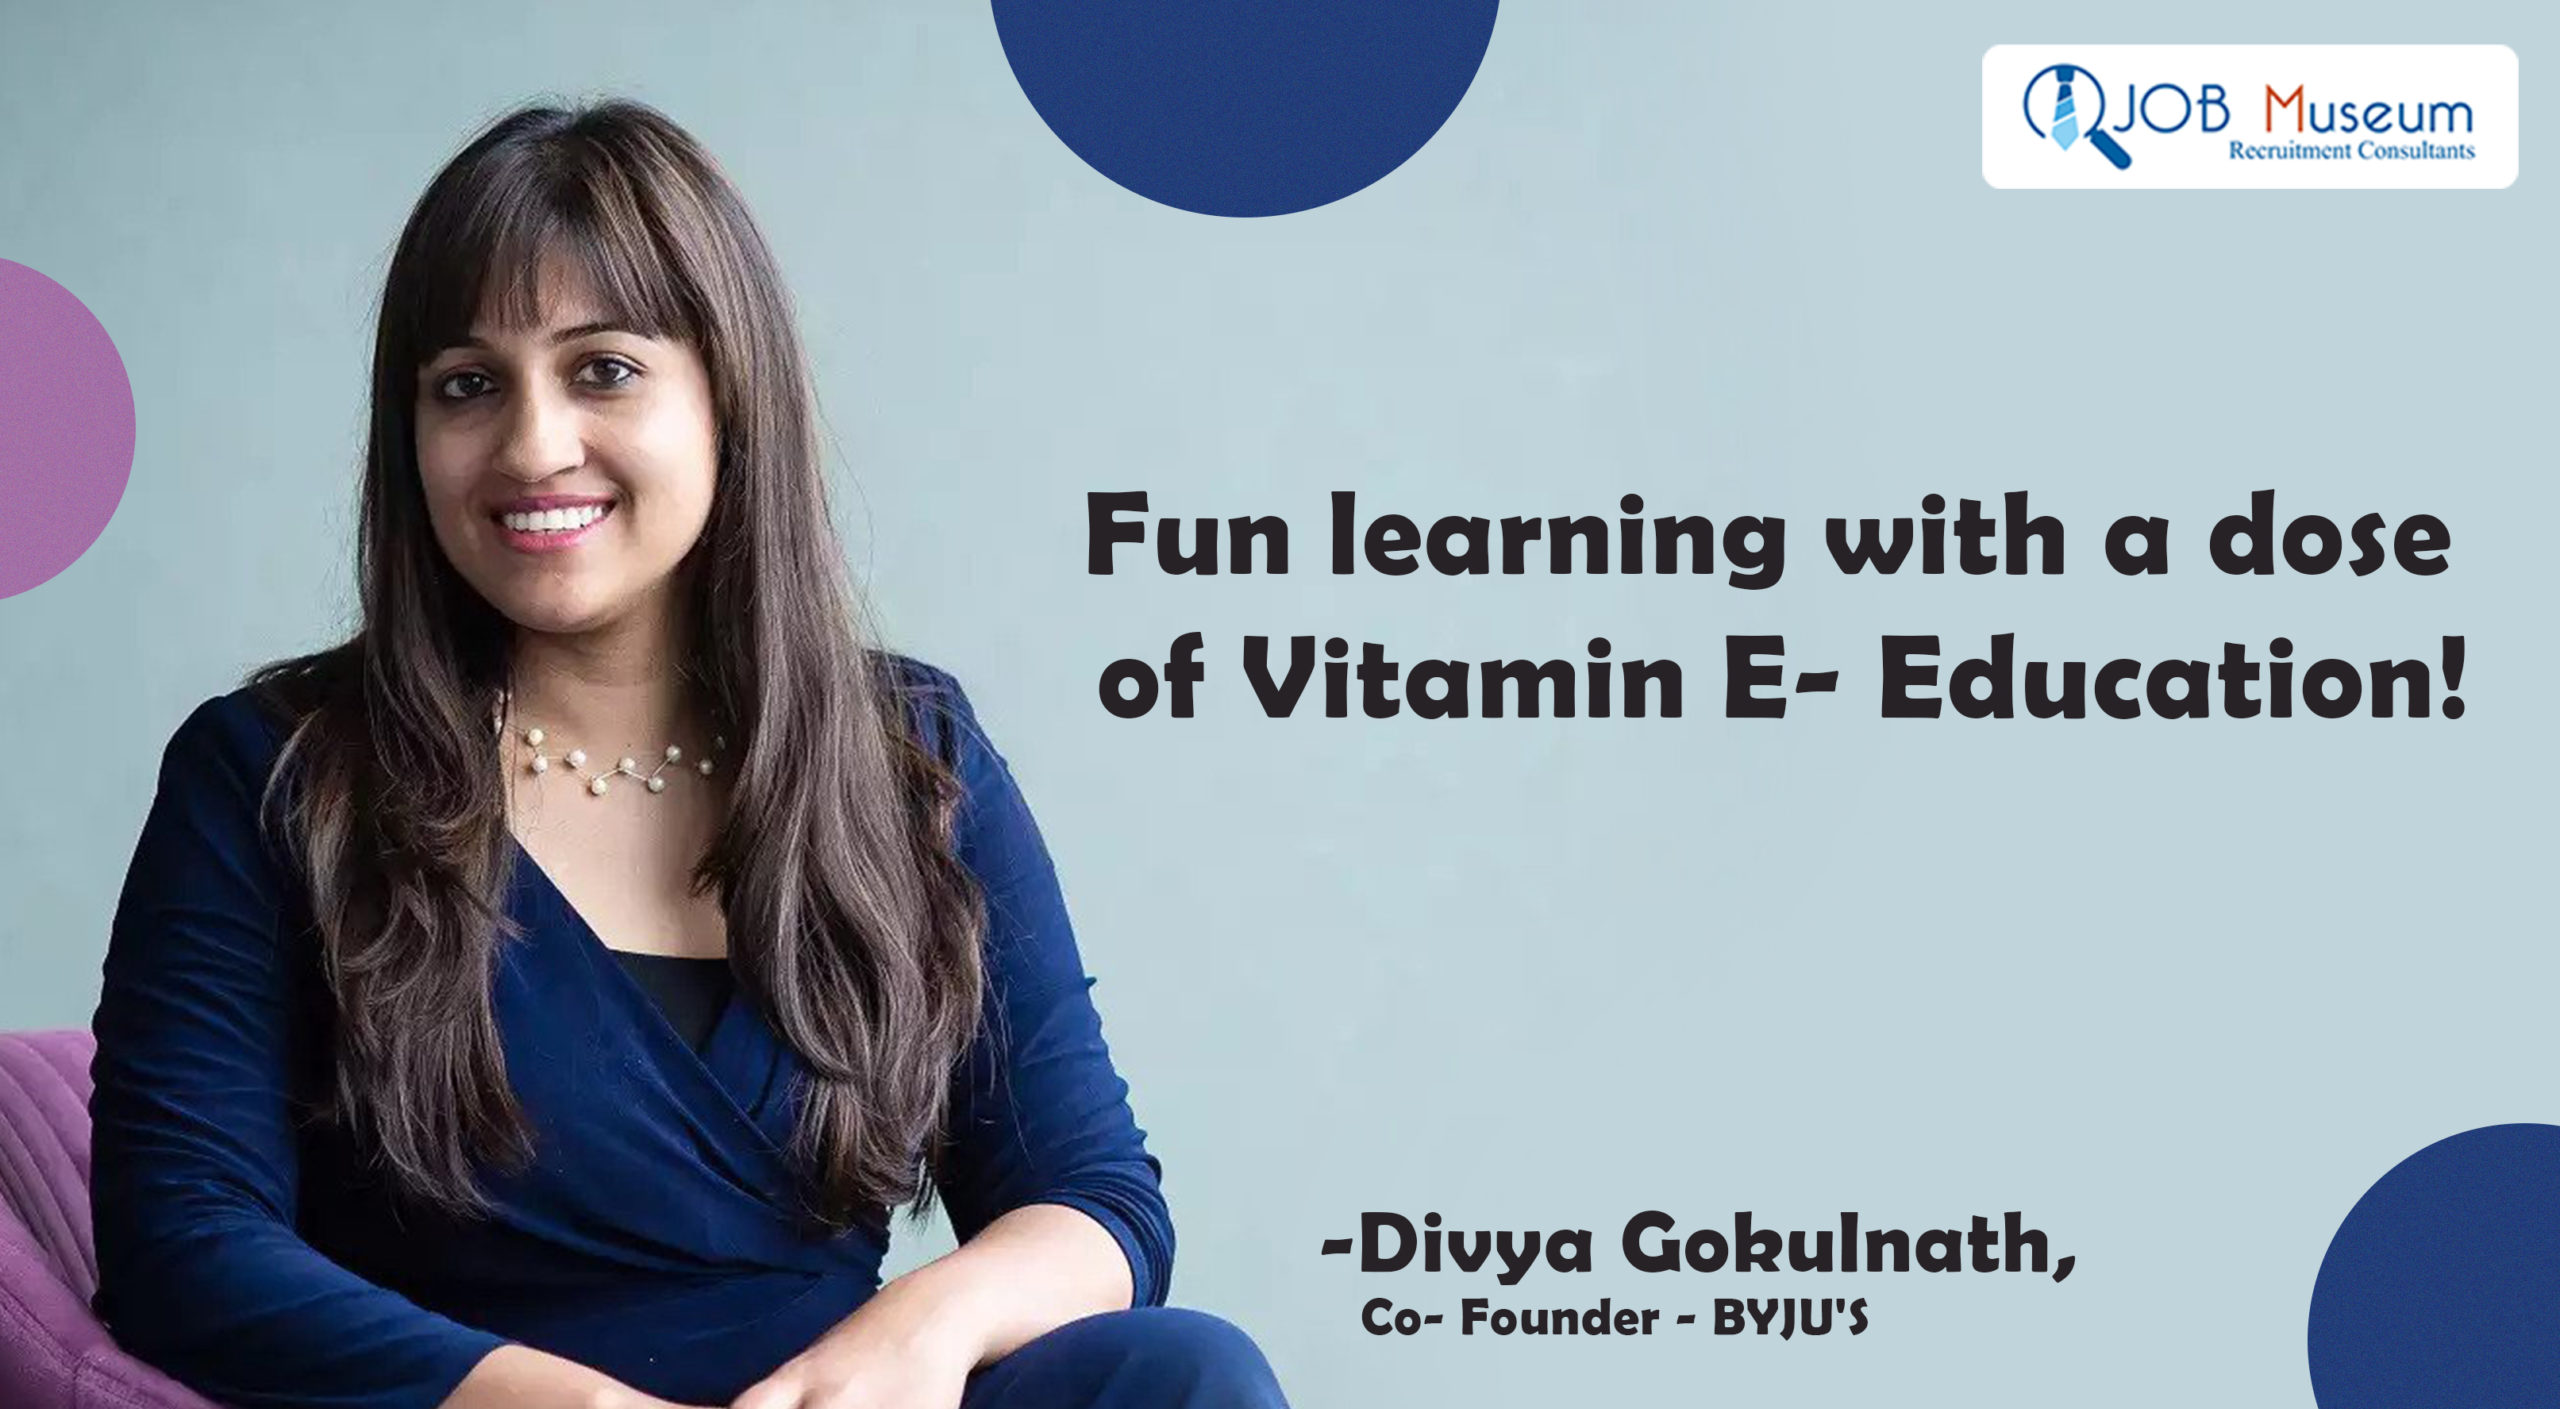 Fun learning with a dose of Vitamin E- Education